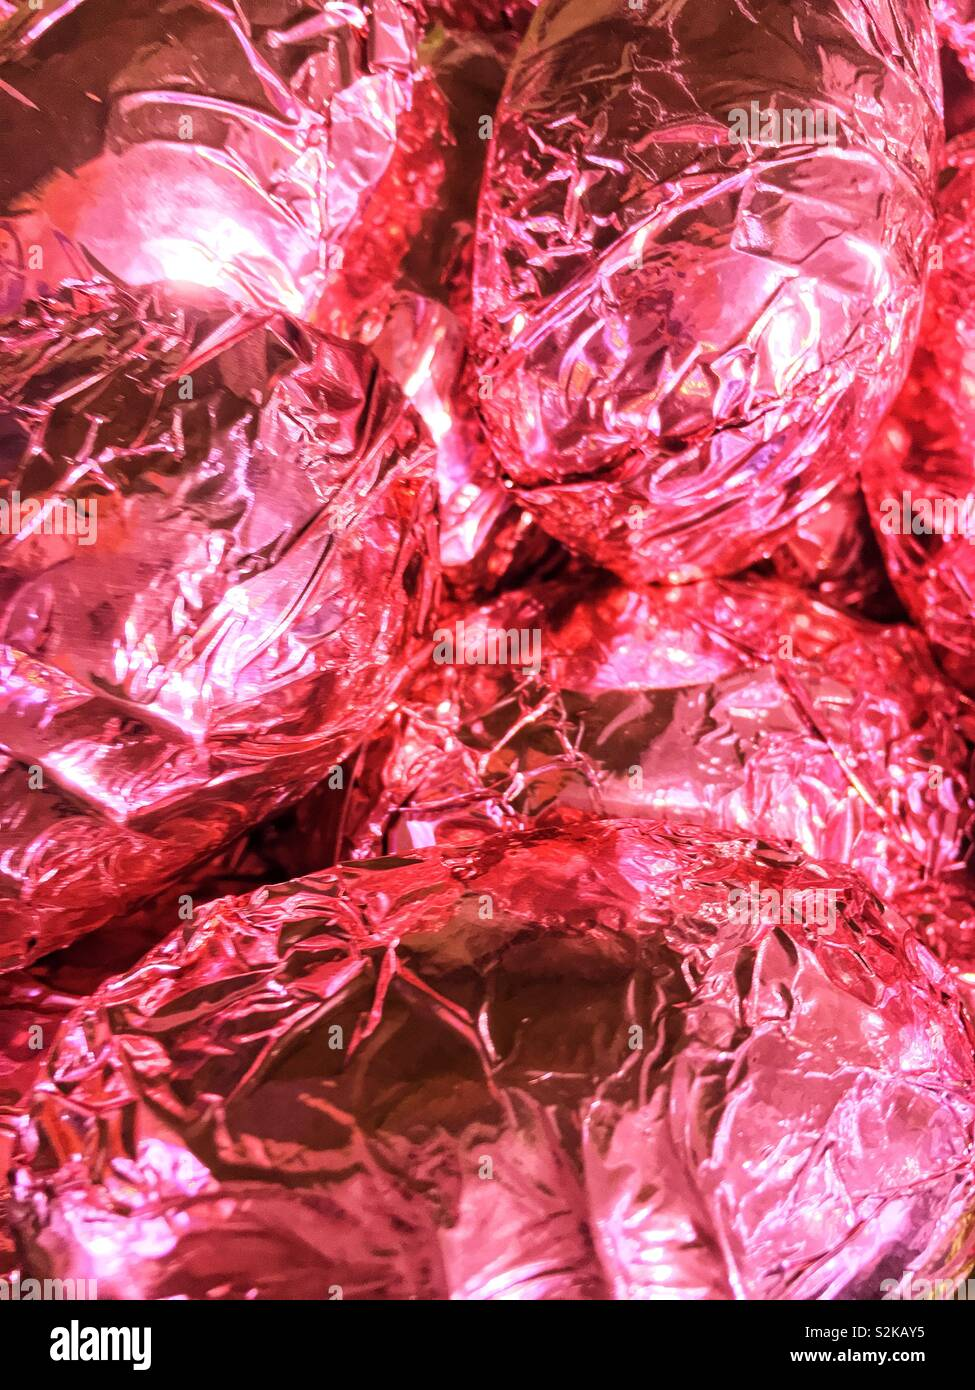 Pink foil wrapped eggs piled in a full frame. - Stock Image